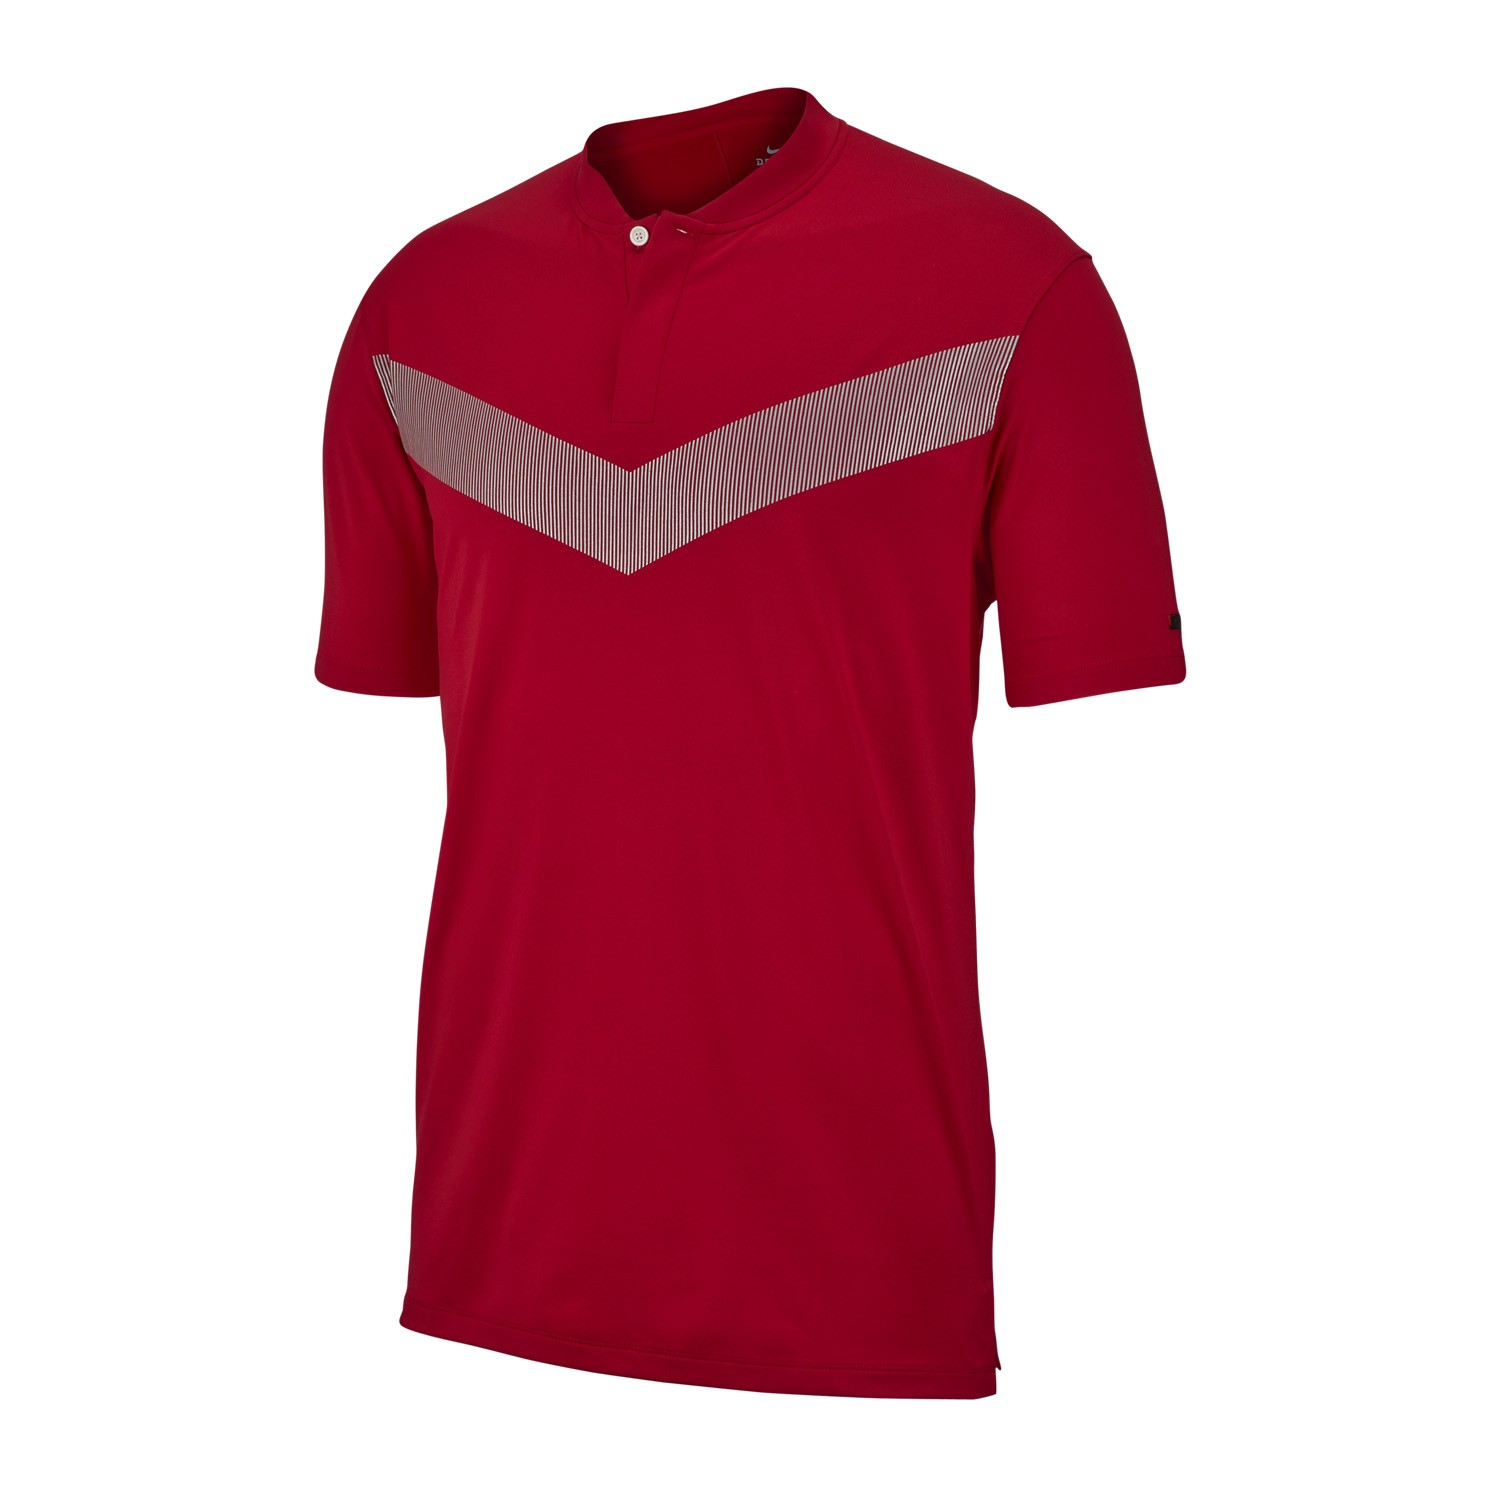 Nike Dri-Fit Tiger Woods Vapor Polo